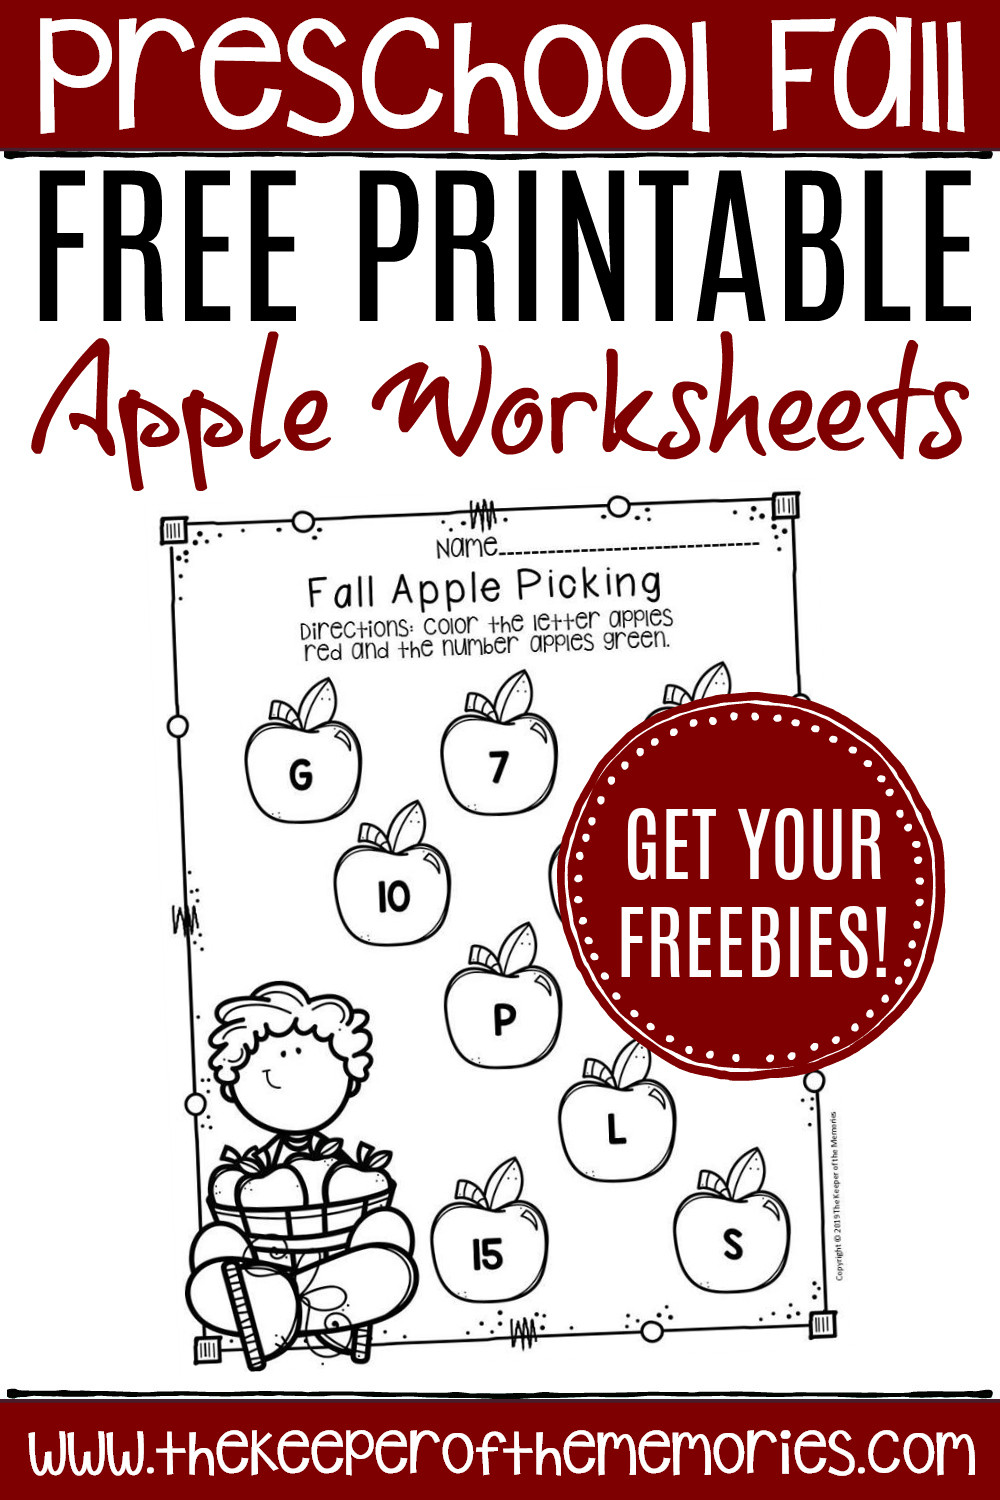 Apple Worksheets Kindergarten Free Printable Apple Worksheets for Preschoolers